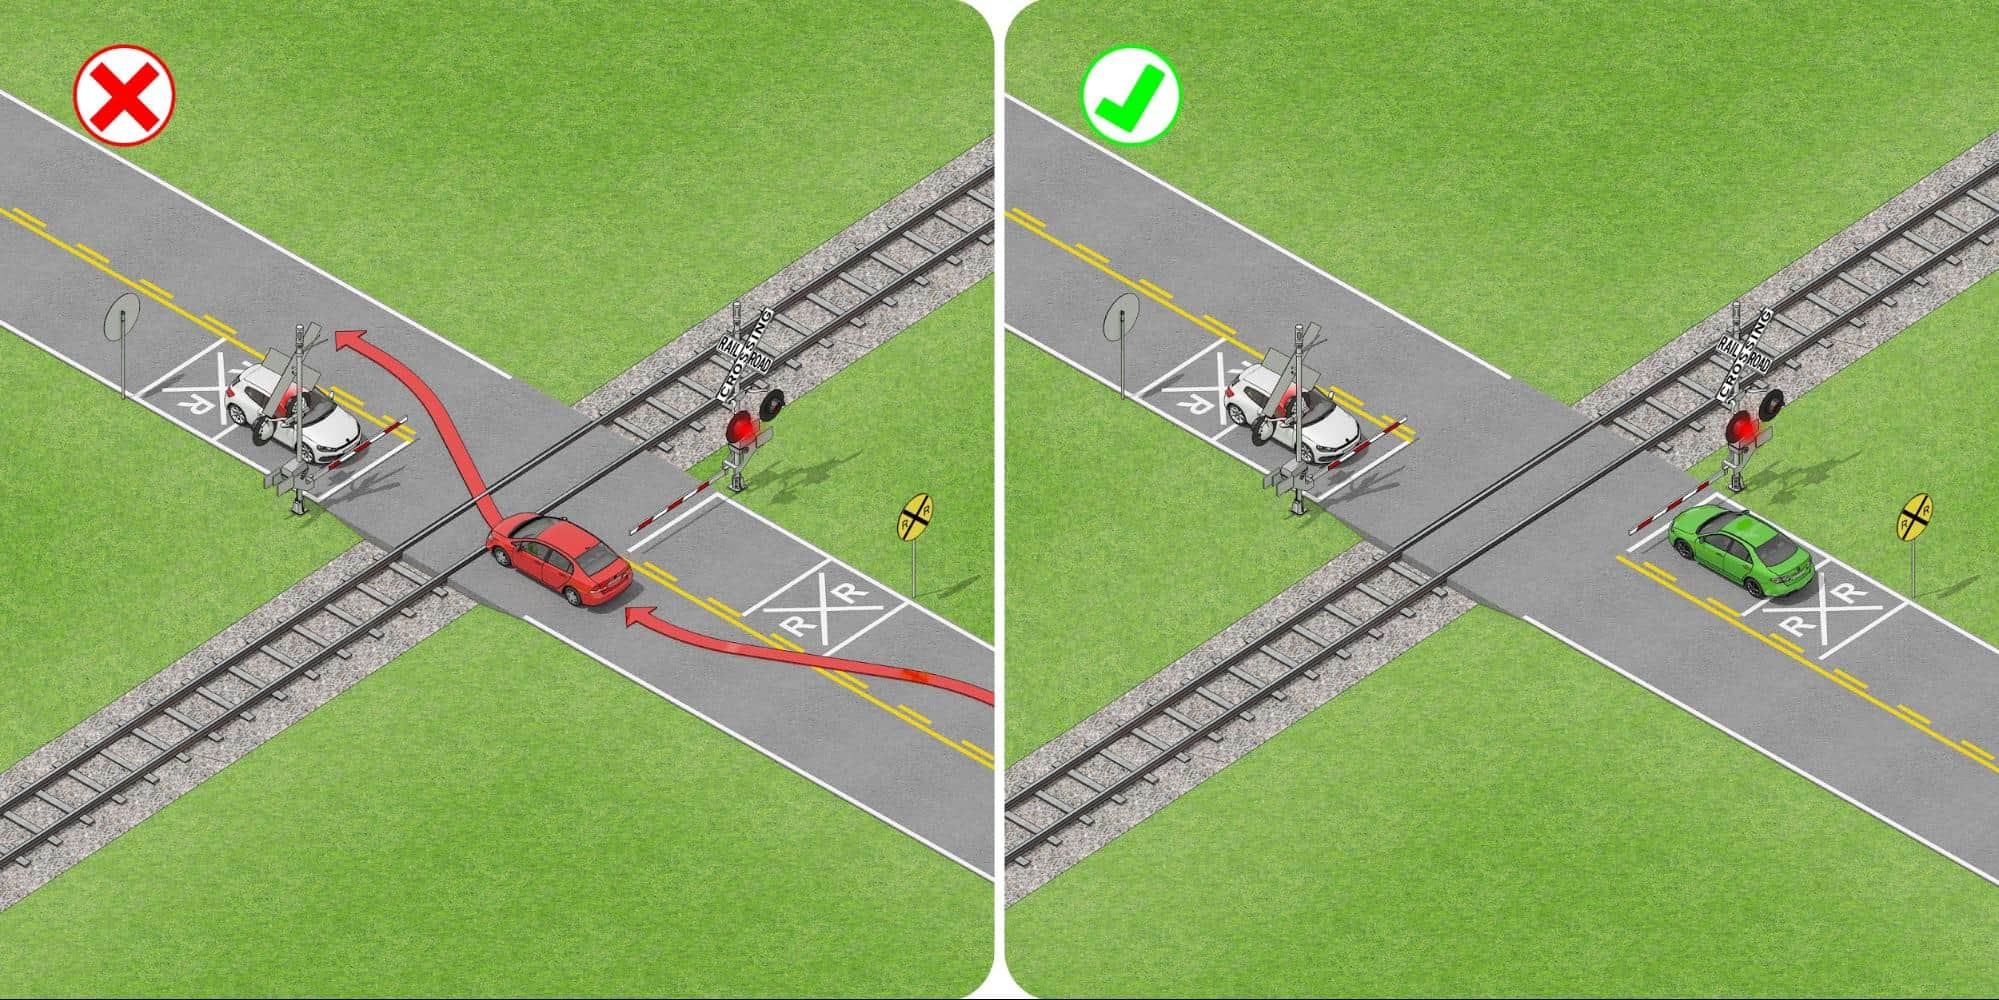 Rules for lowered crossing gates with flashing red lights